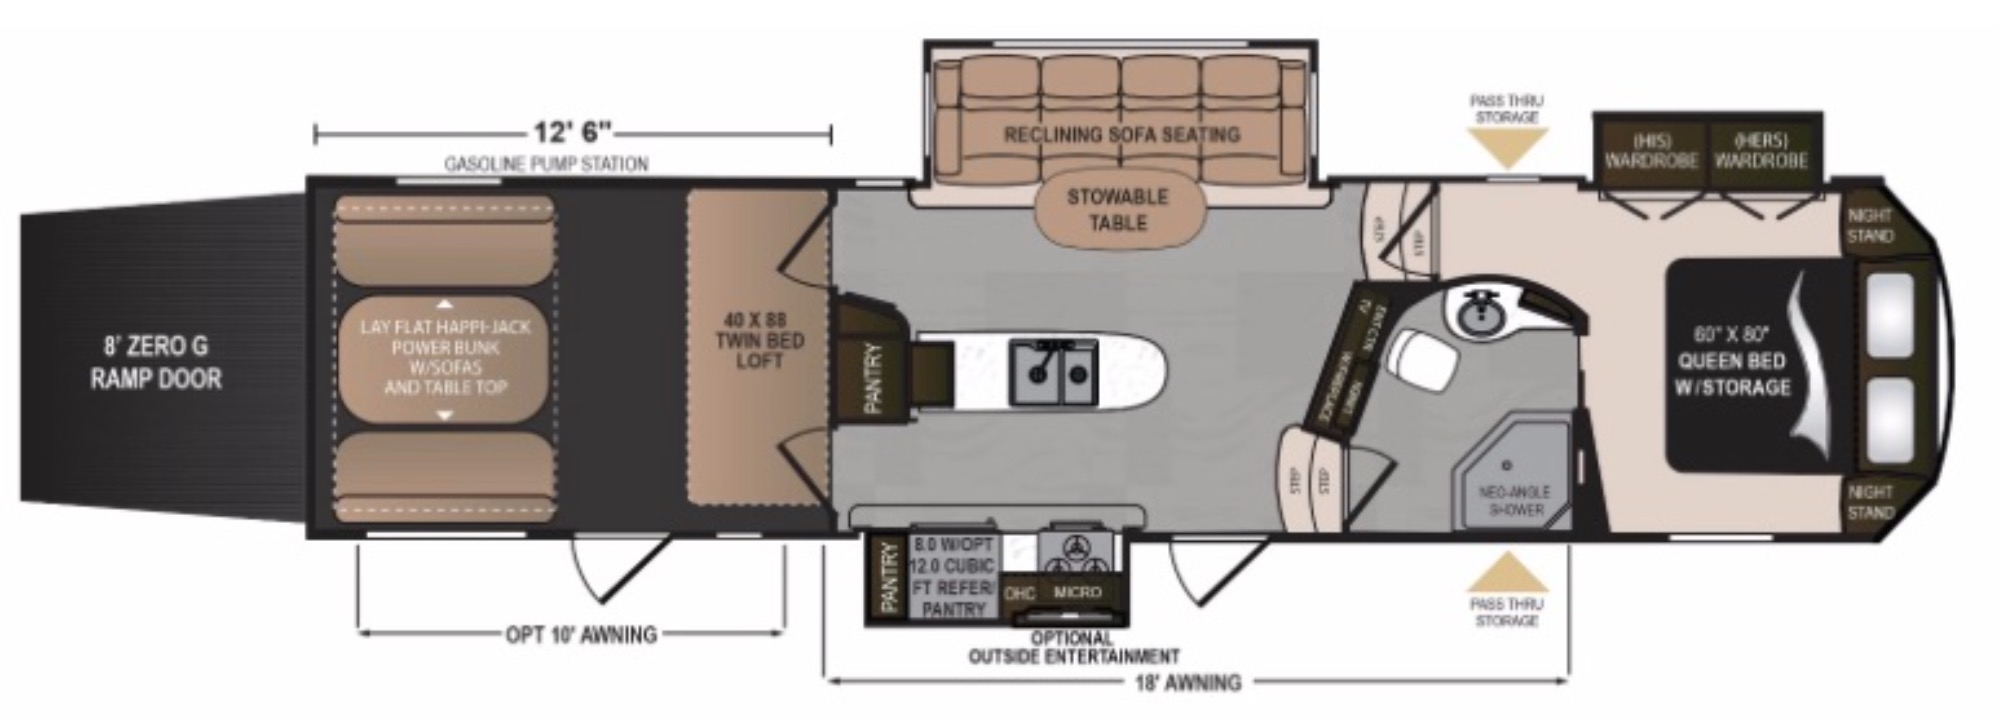 Small 5th Wheel Toy Hauler Floor Plans Carpet Vidalondon